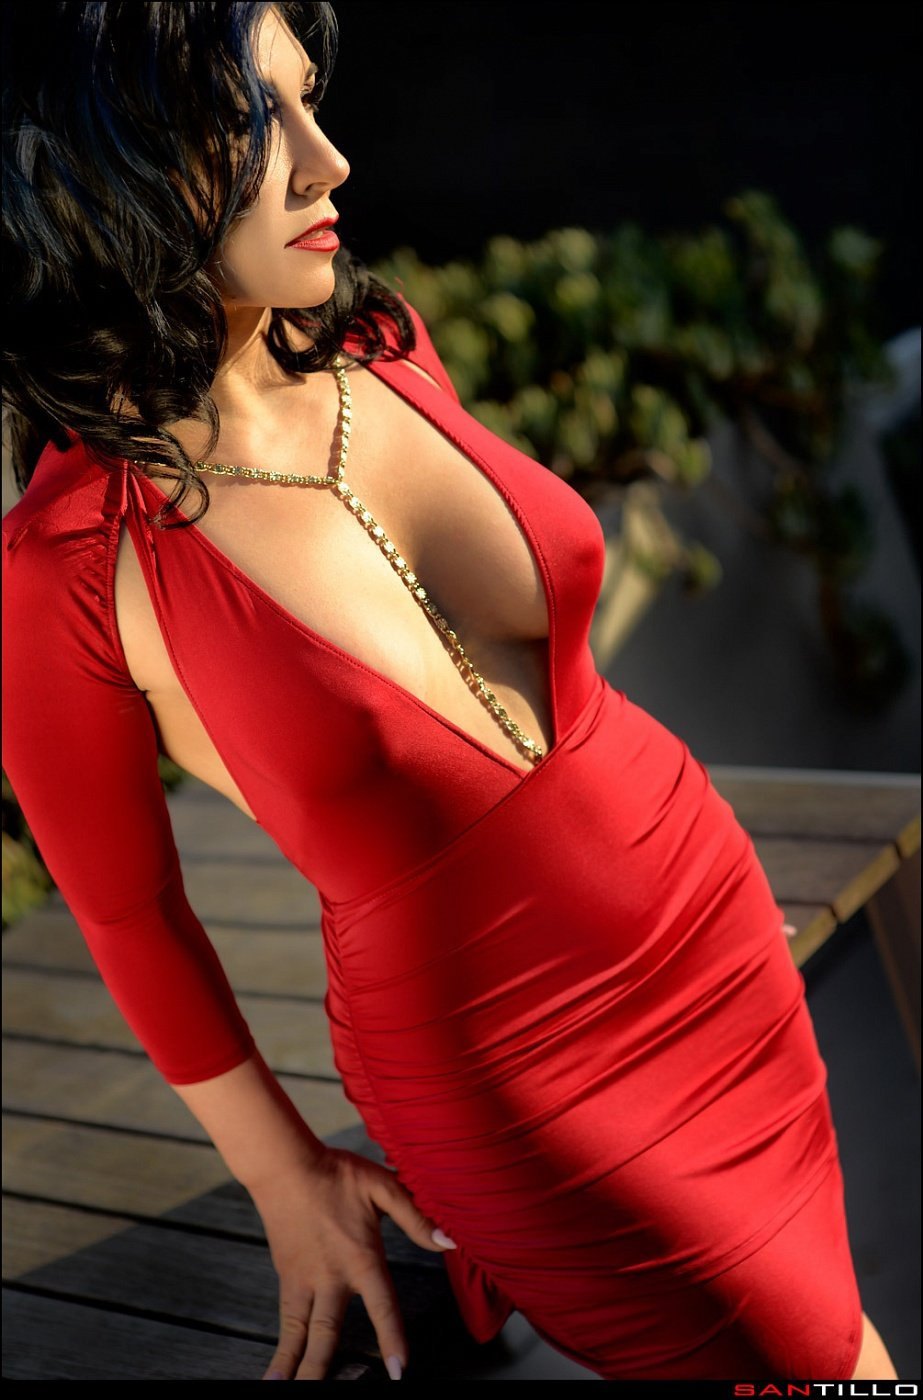 San jose escorts india